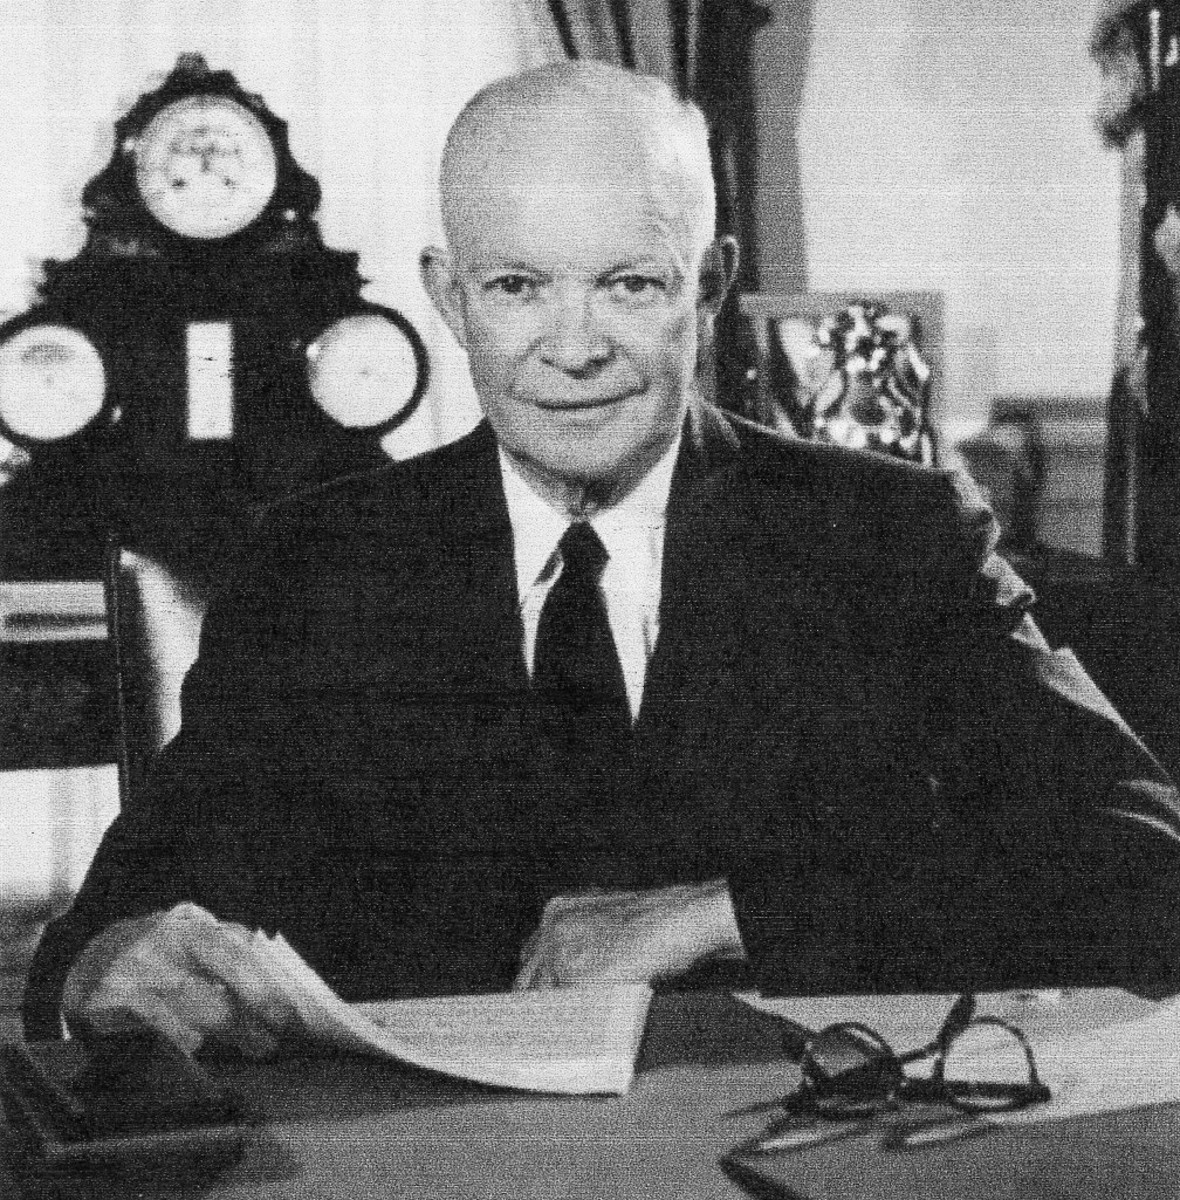 Dwight D. Eisenhower, the thirty-fourth president, 1953-1961